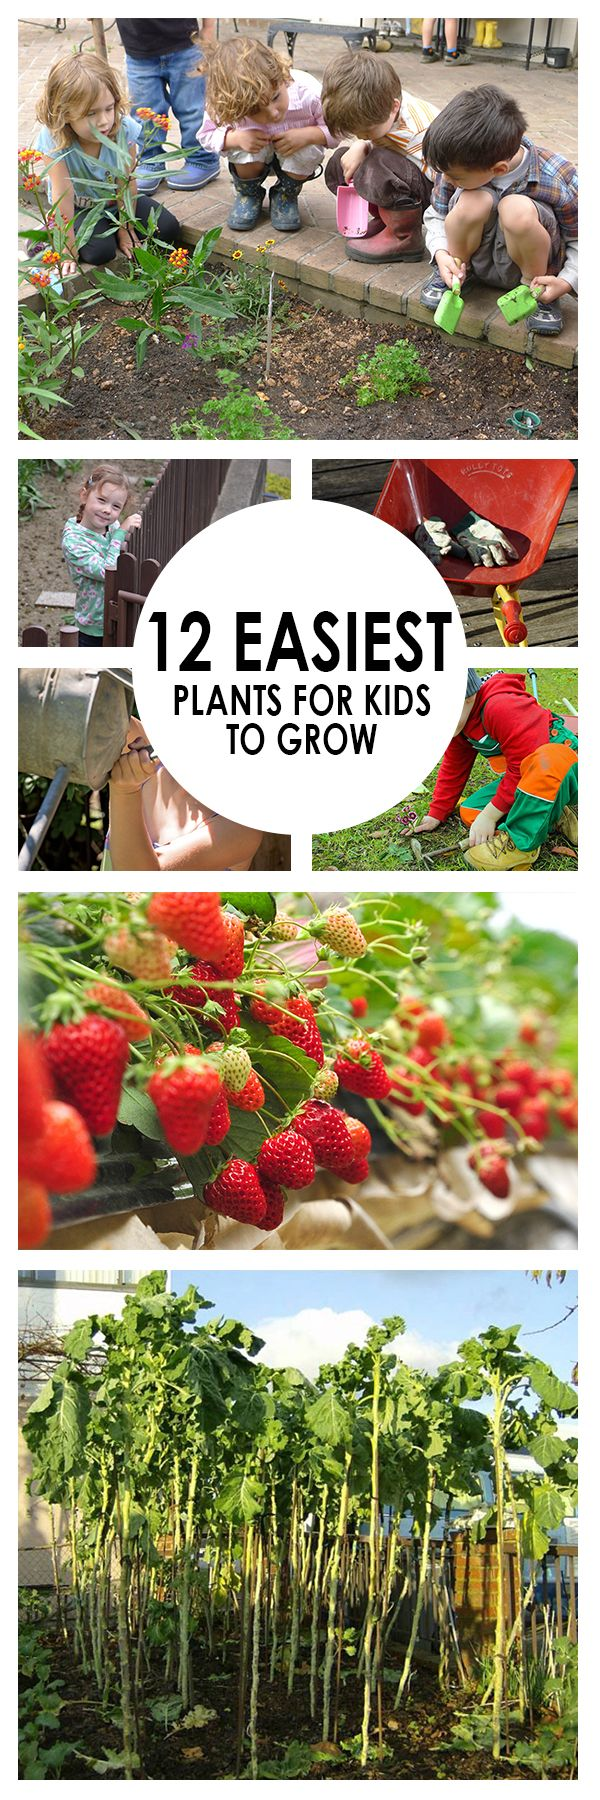 17 Best ideas about Easy Garden on Pinterest Organic gardening